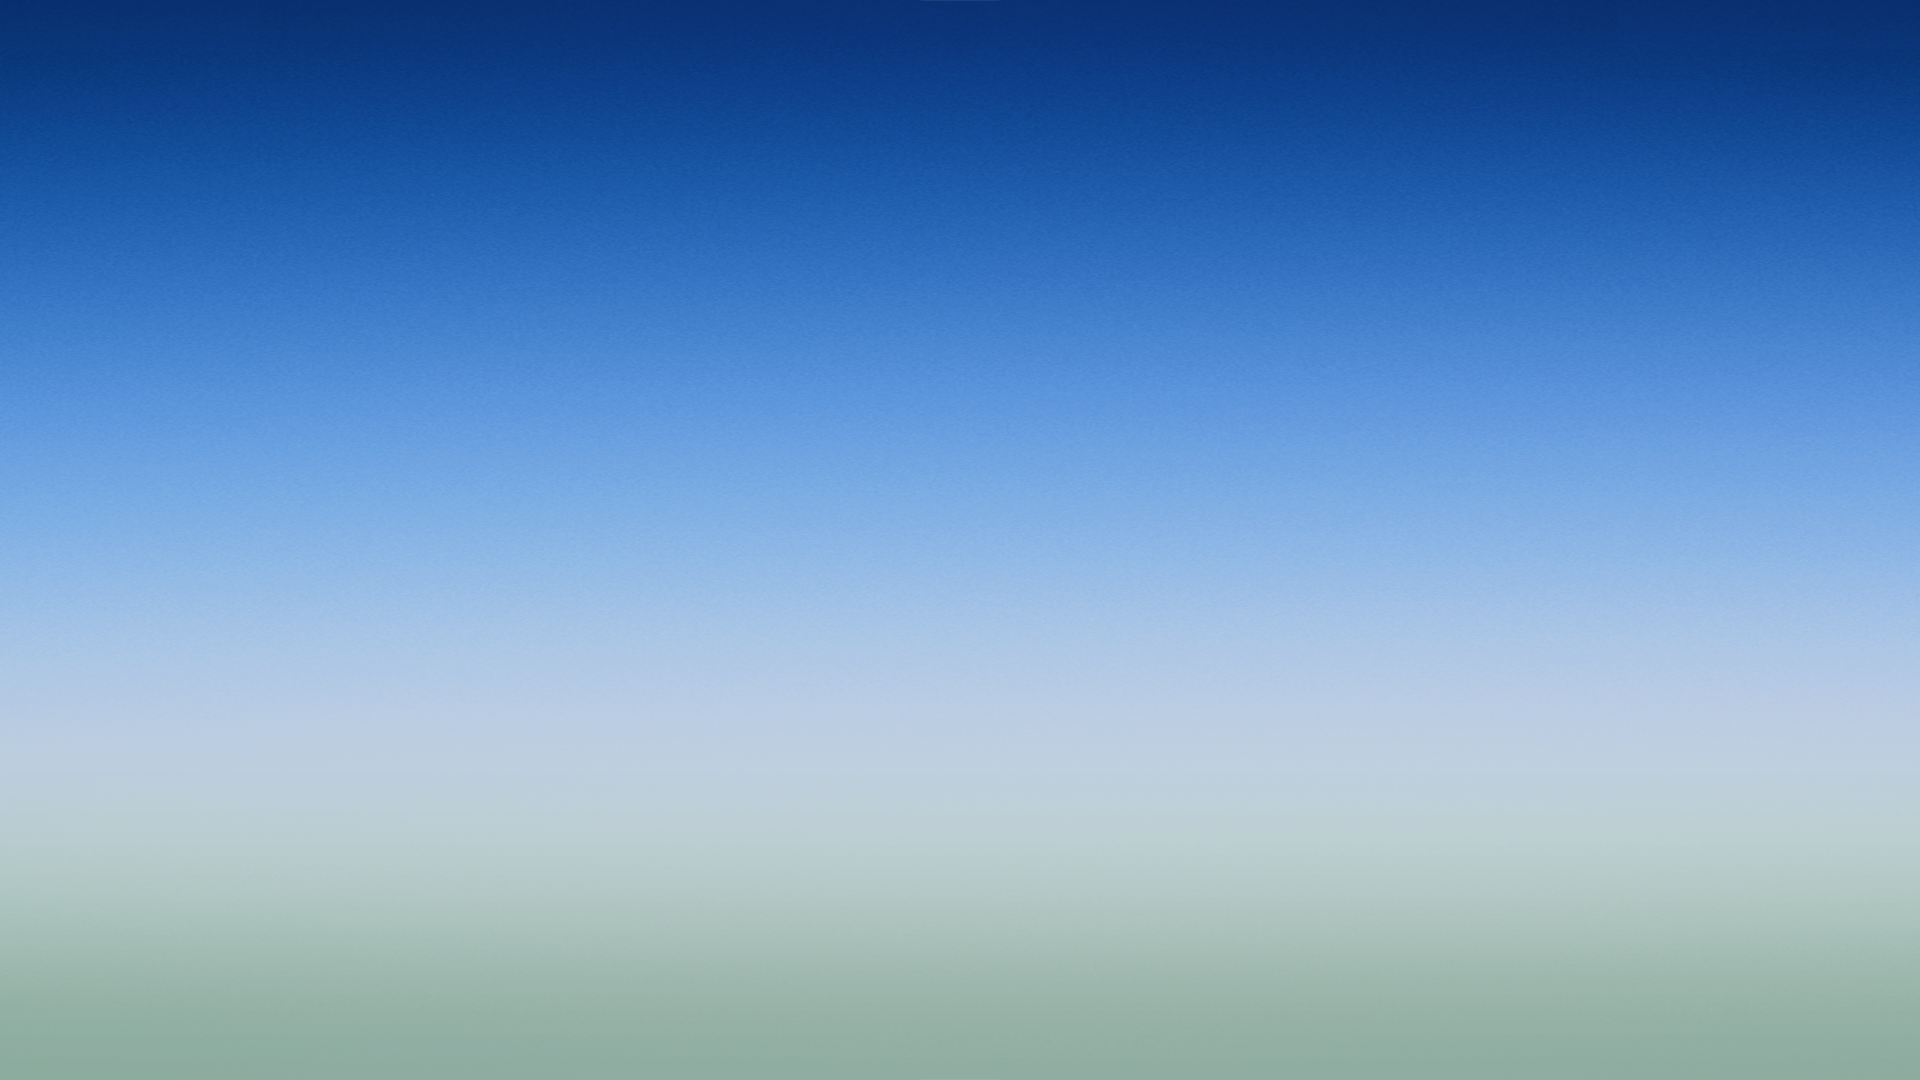 2048x2048 Serene Sunset Ipad Air Hd 4k Wallpapers Images: IOS Wallpapers For Mac